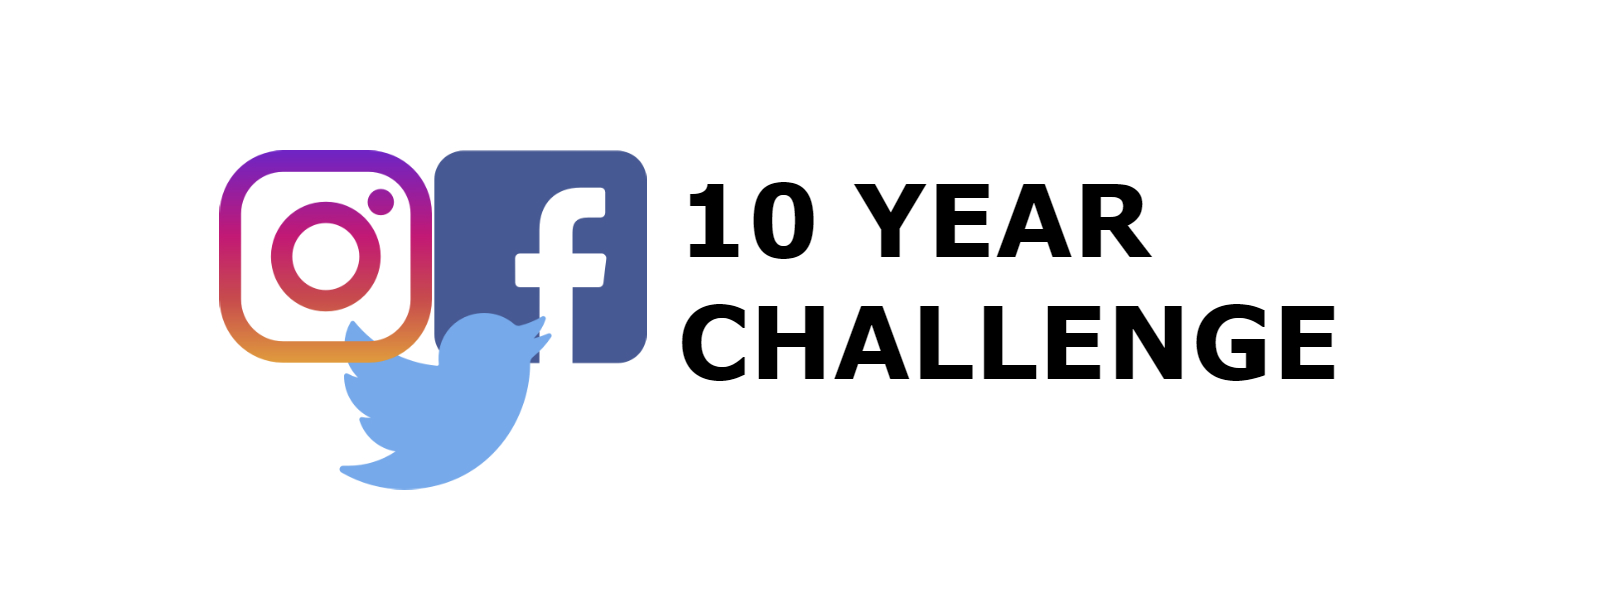 Is Facebook's '10 Year Challenge' a creepy facial recognition gambit?